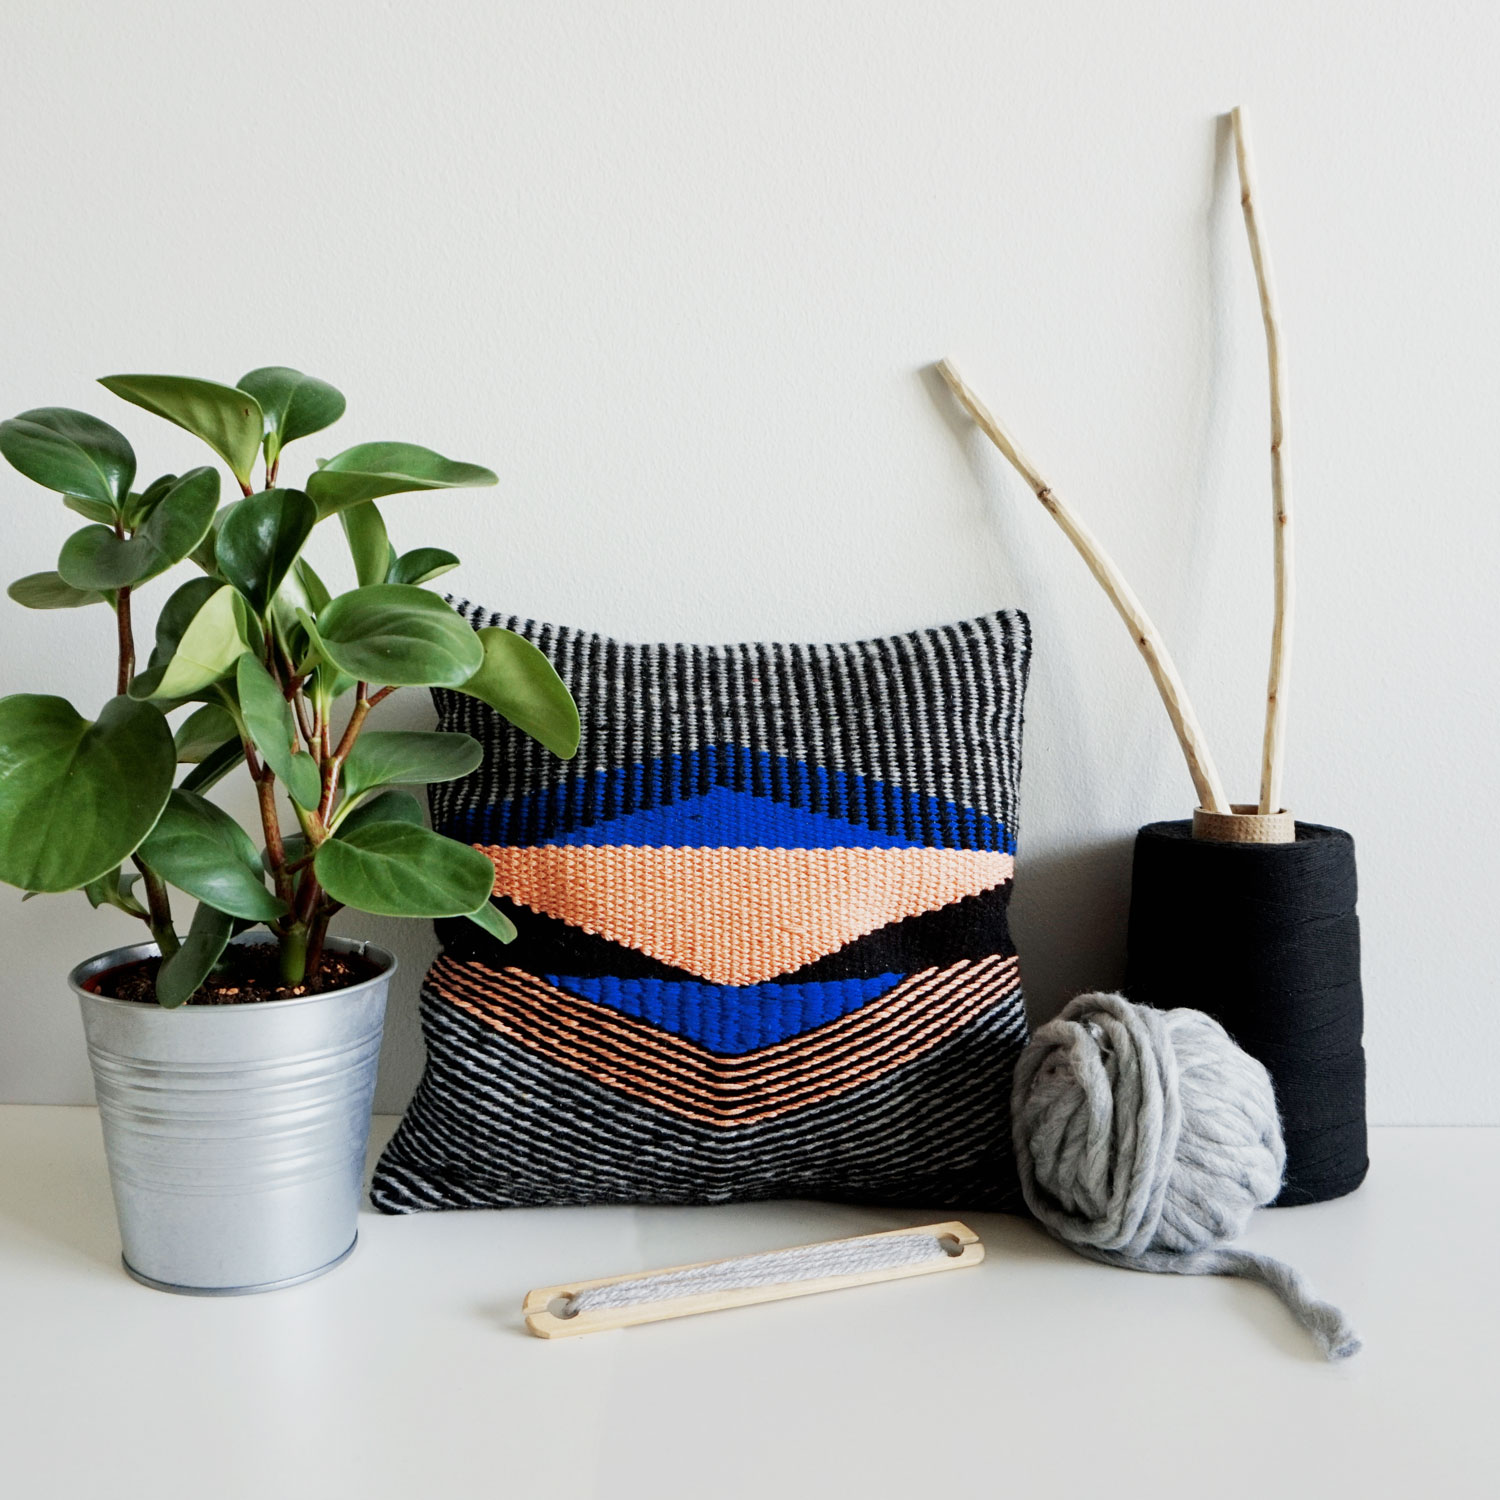 A small geometric pillow case with a smooth texture and an interesting play of stripes and solid shapes.